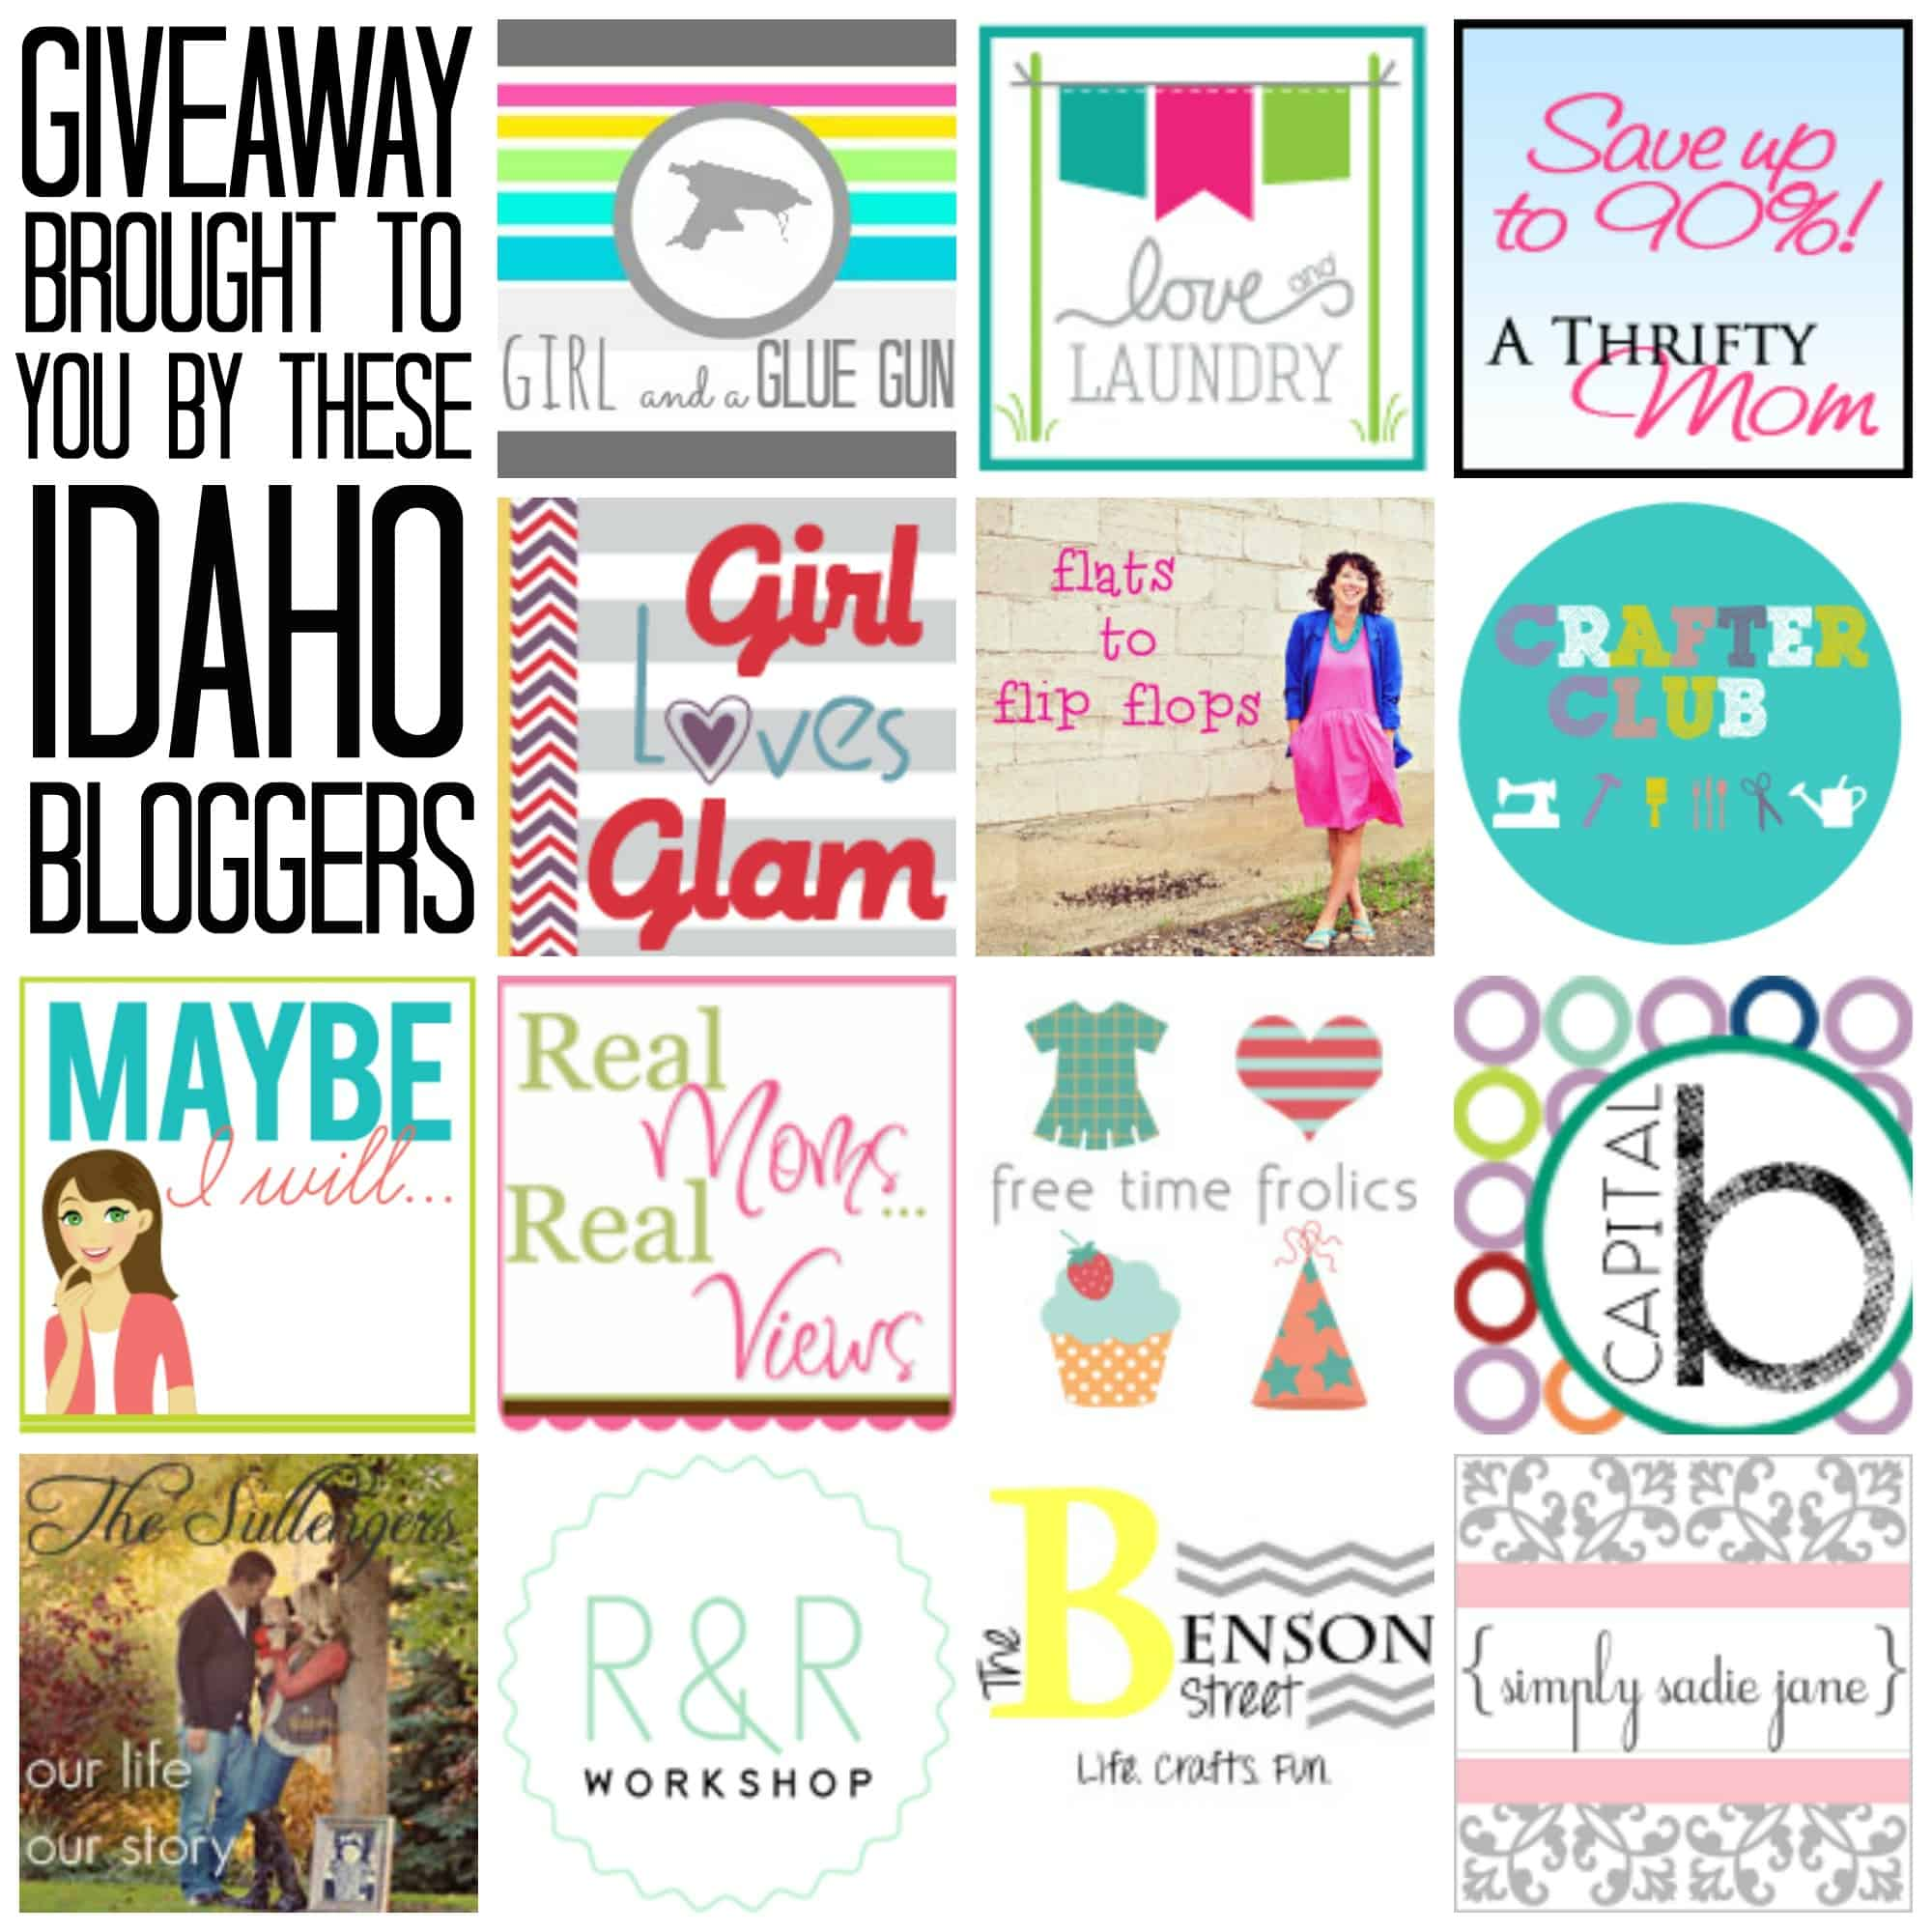 Idaho Bloggers Giveaway The Sullengers